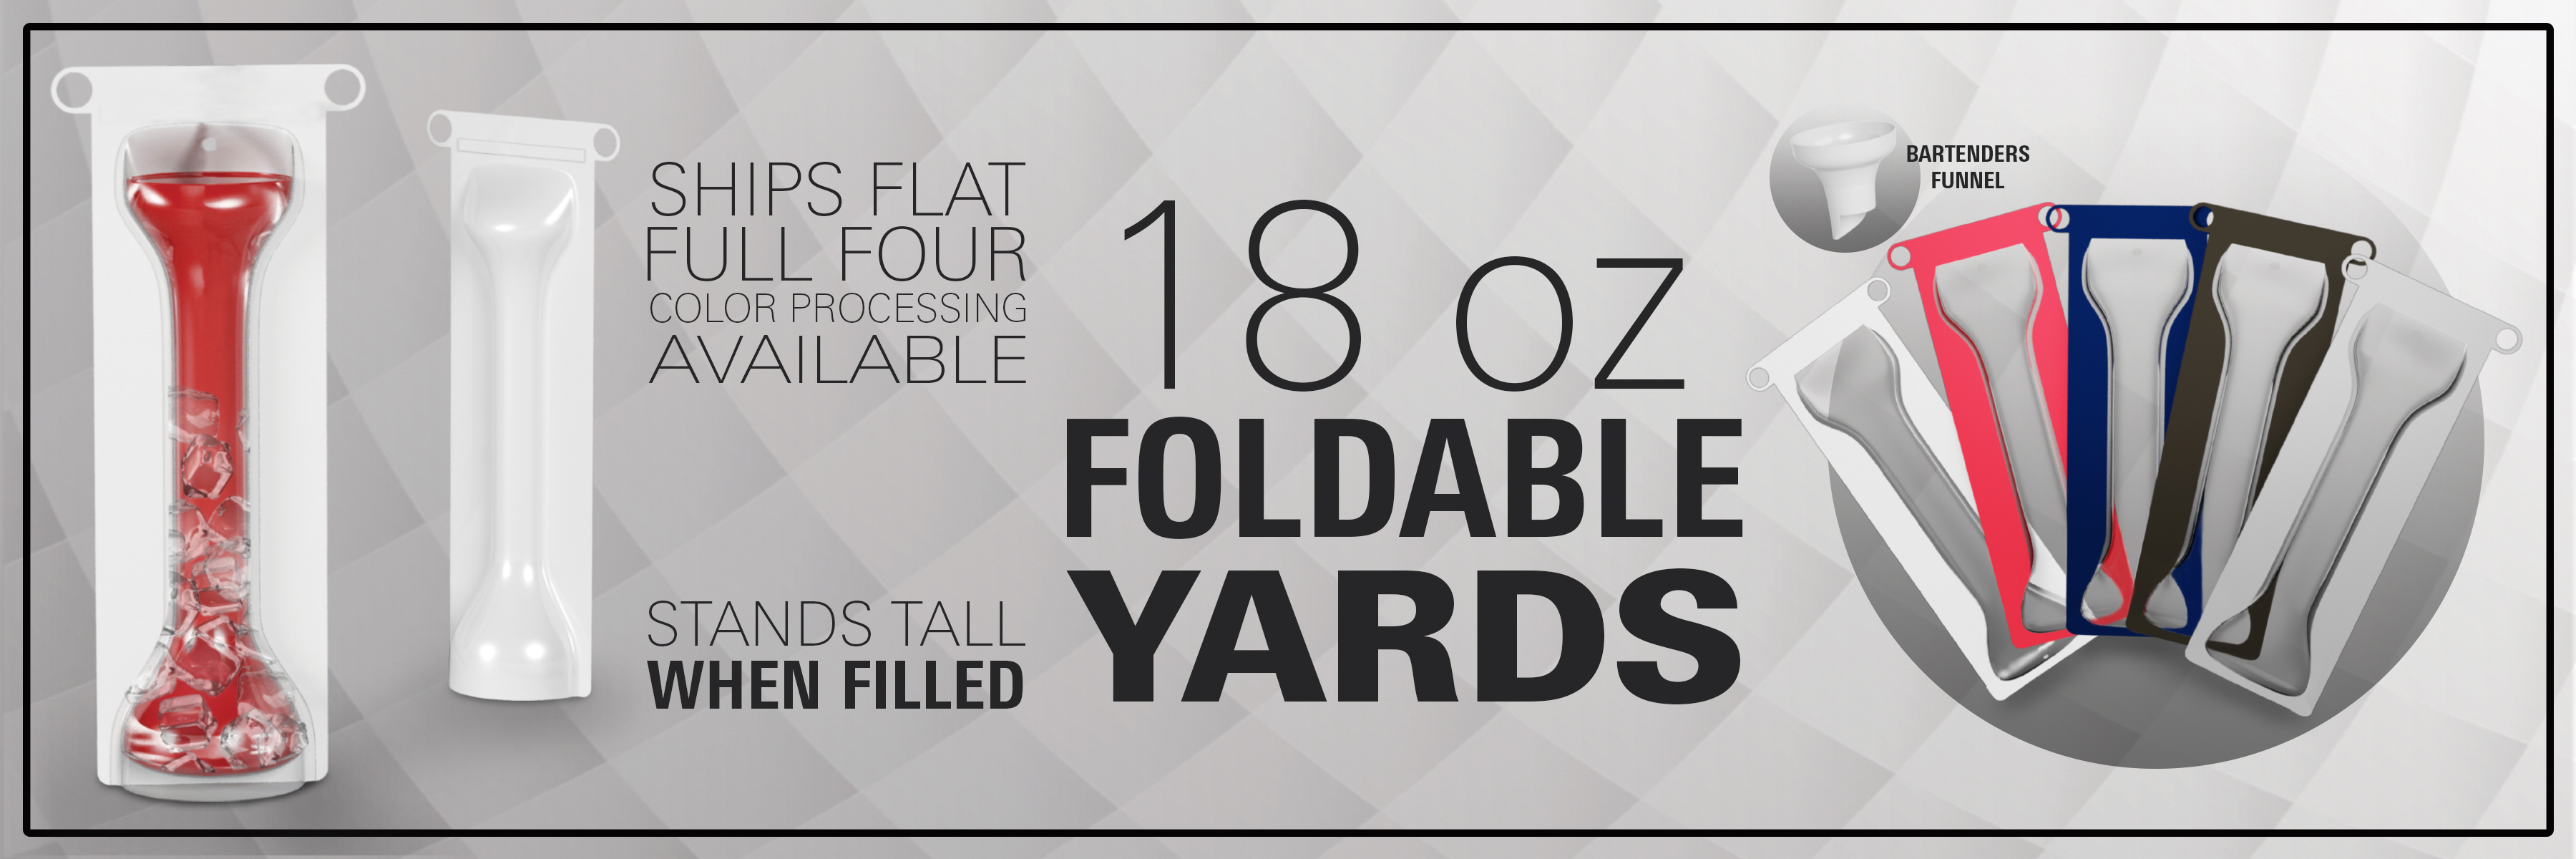 Foldable Yards